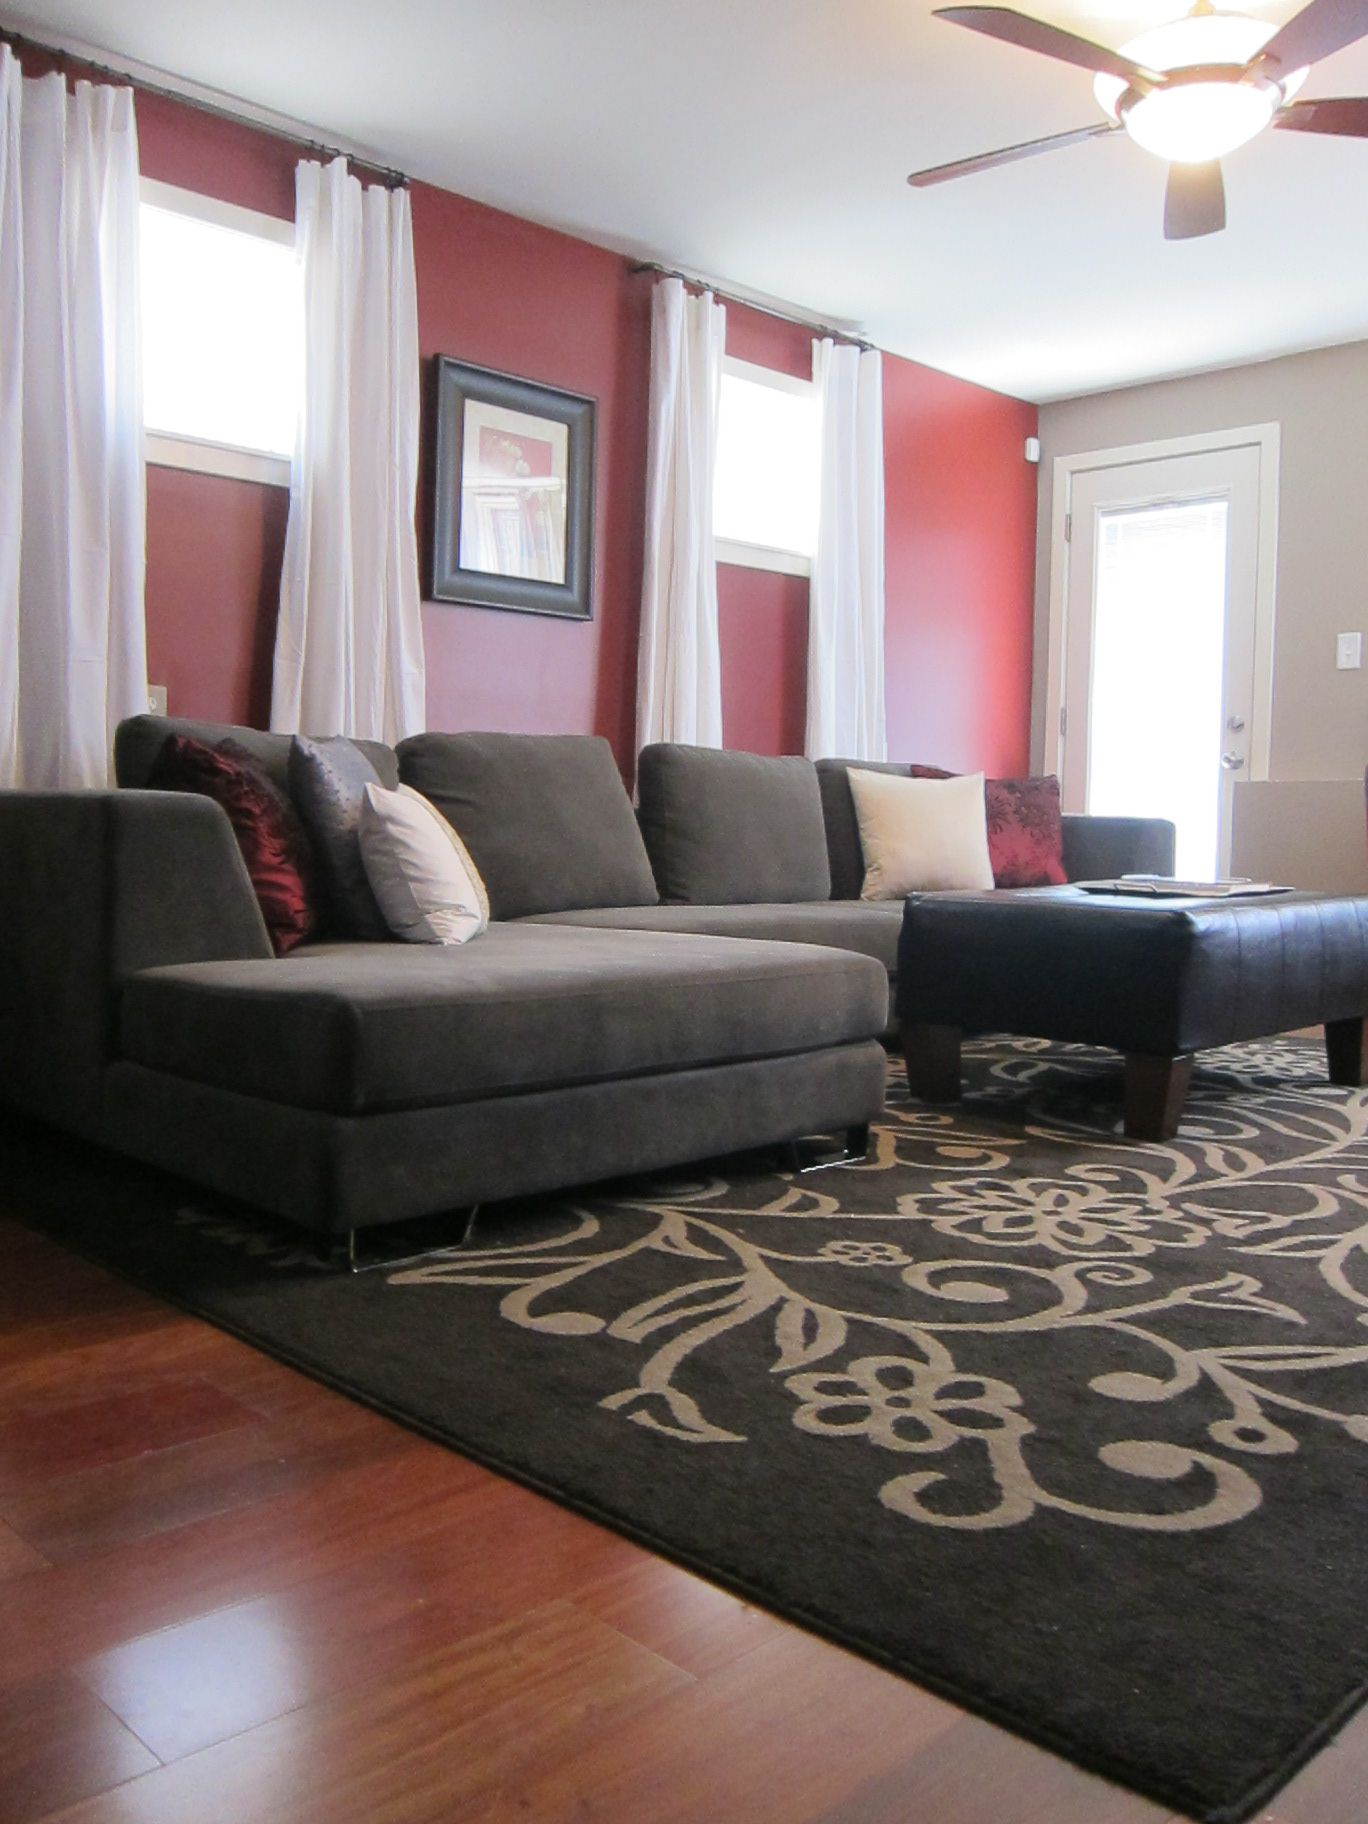 A Philadelphia Tv Host 39 S Home Complete With A Red Accent Wall Interests Design Home